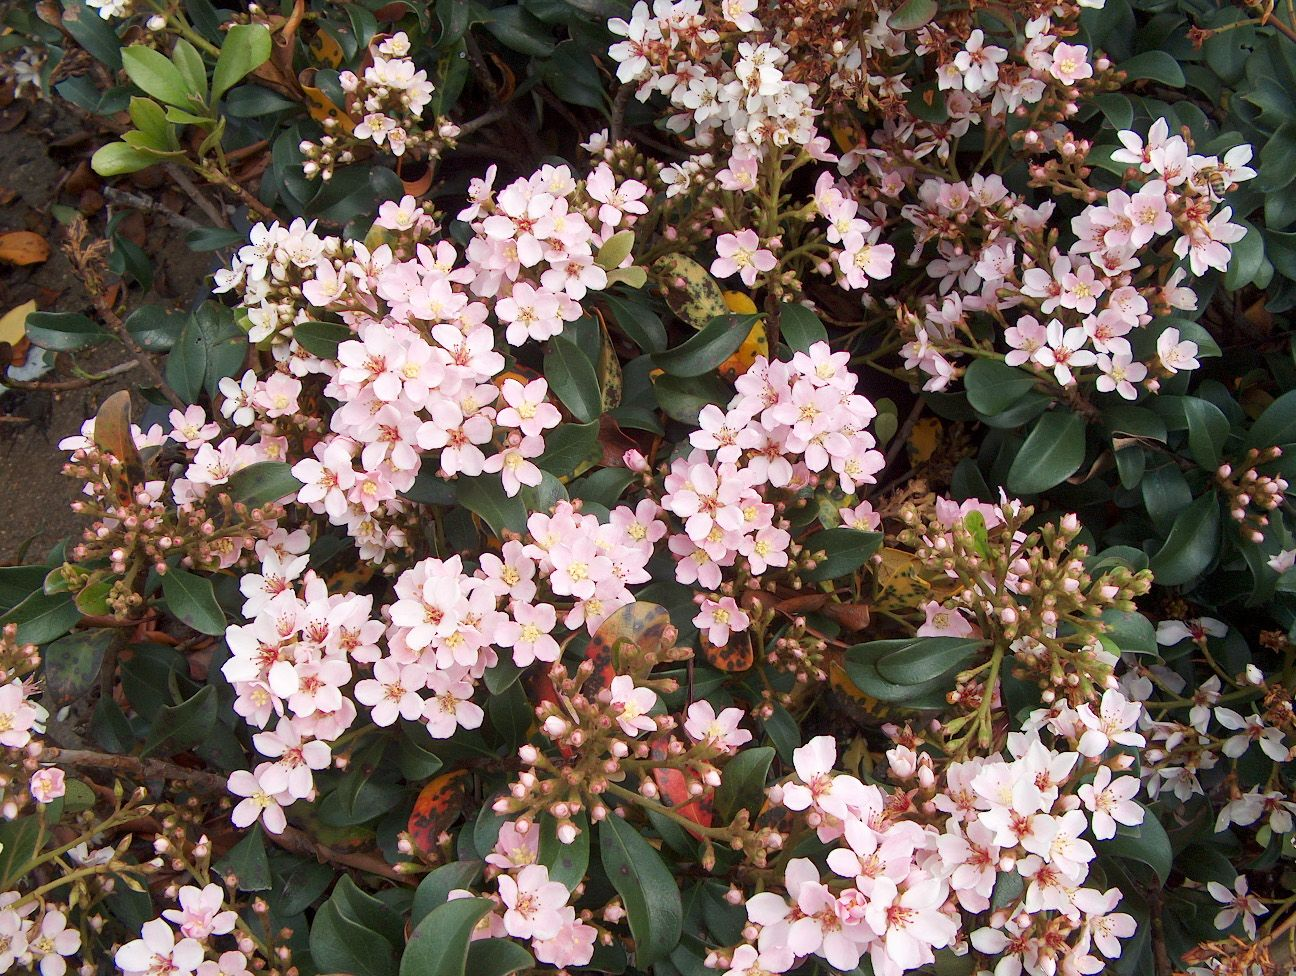 Indian Hawthorn Raphiolepis Indica Evergreen Small Flowering Shrub Flower Colours Ranging From White To